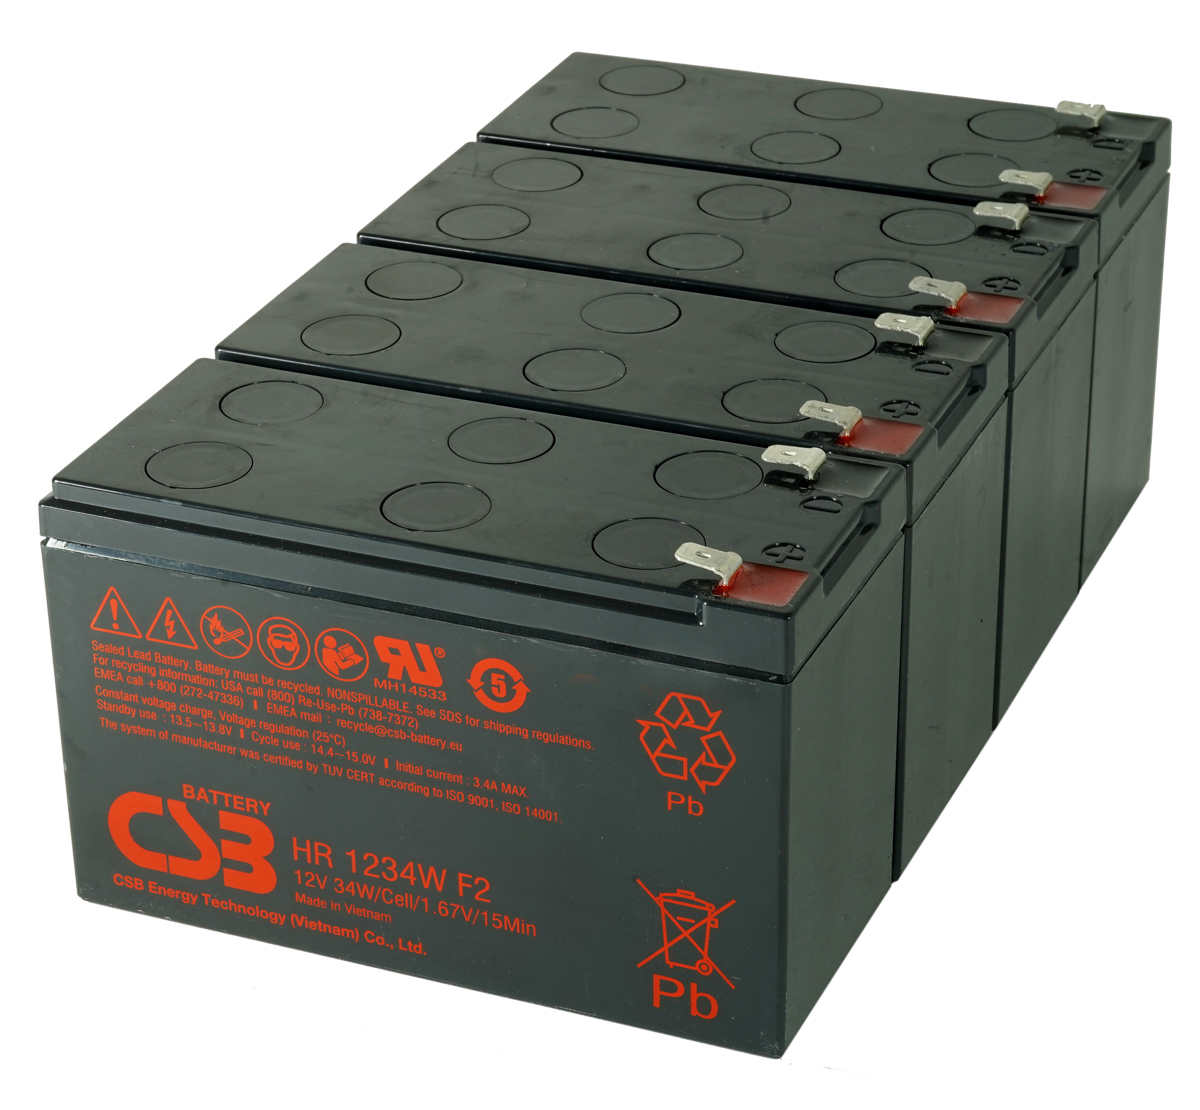 MDS2804 UPS Battery Kit for MGE AB2804